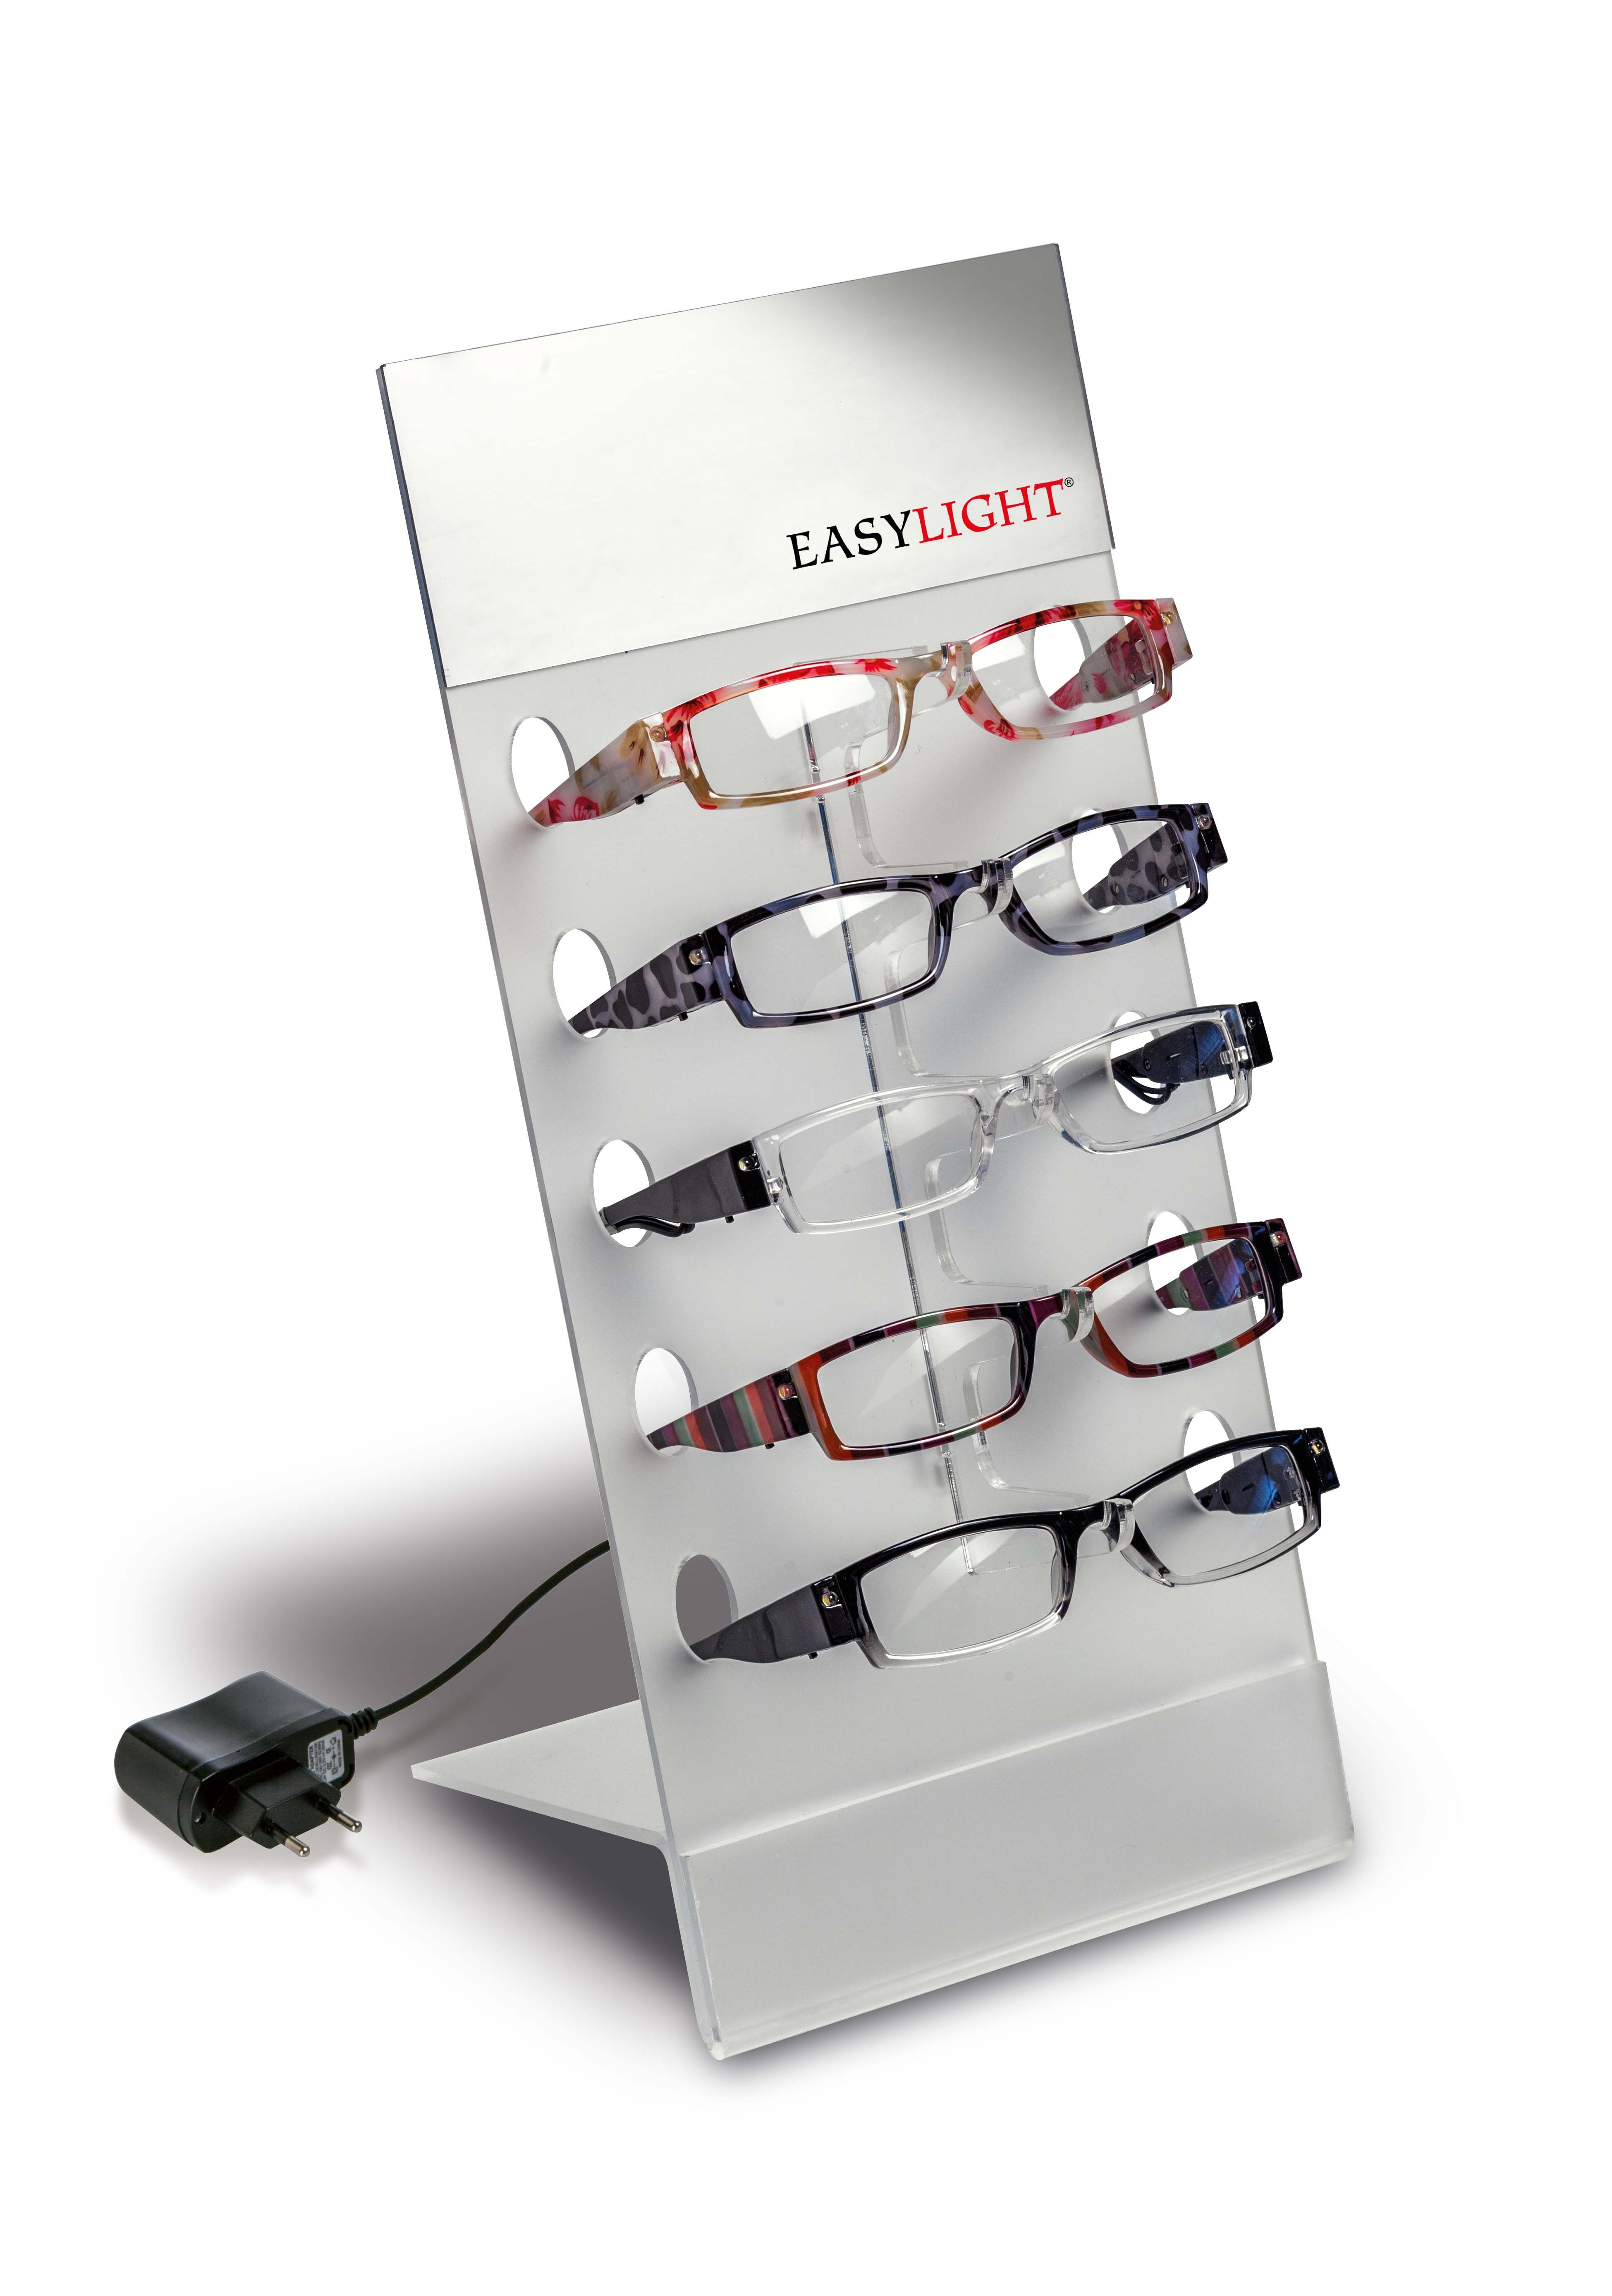 53c0da7cf52 EasyLight LED Lighted Readers come in a range of colors